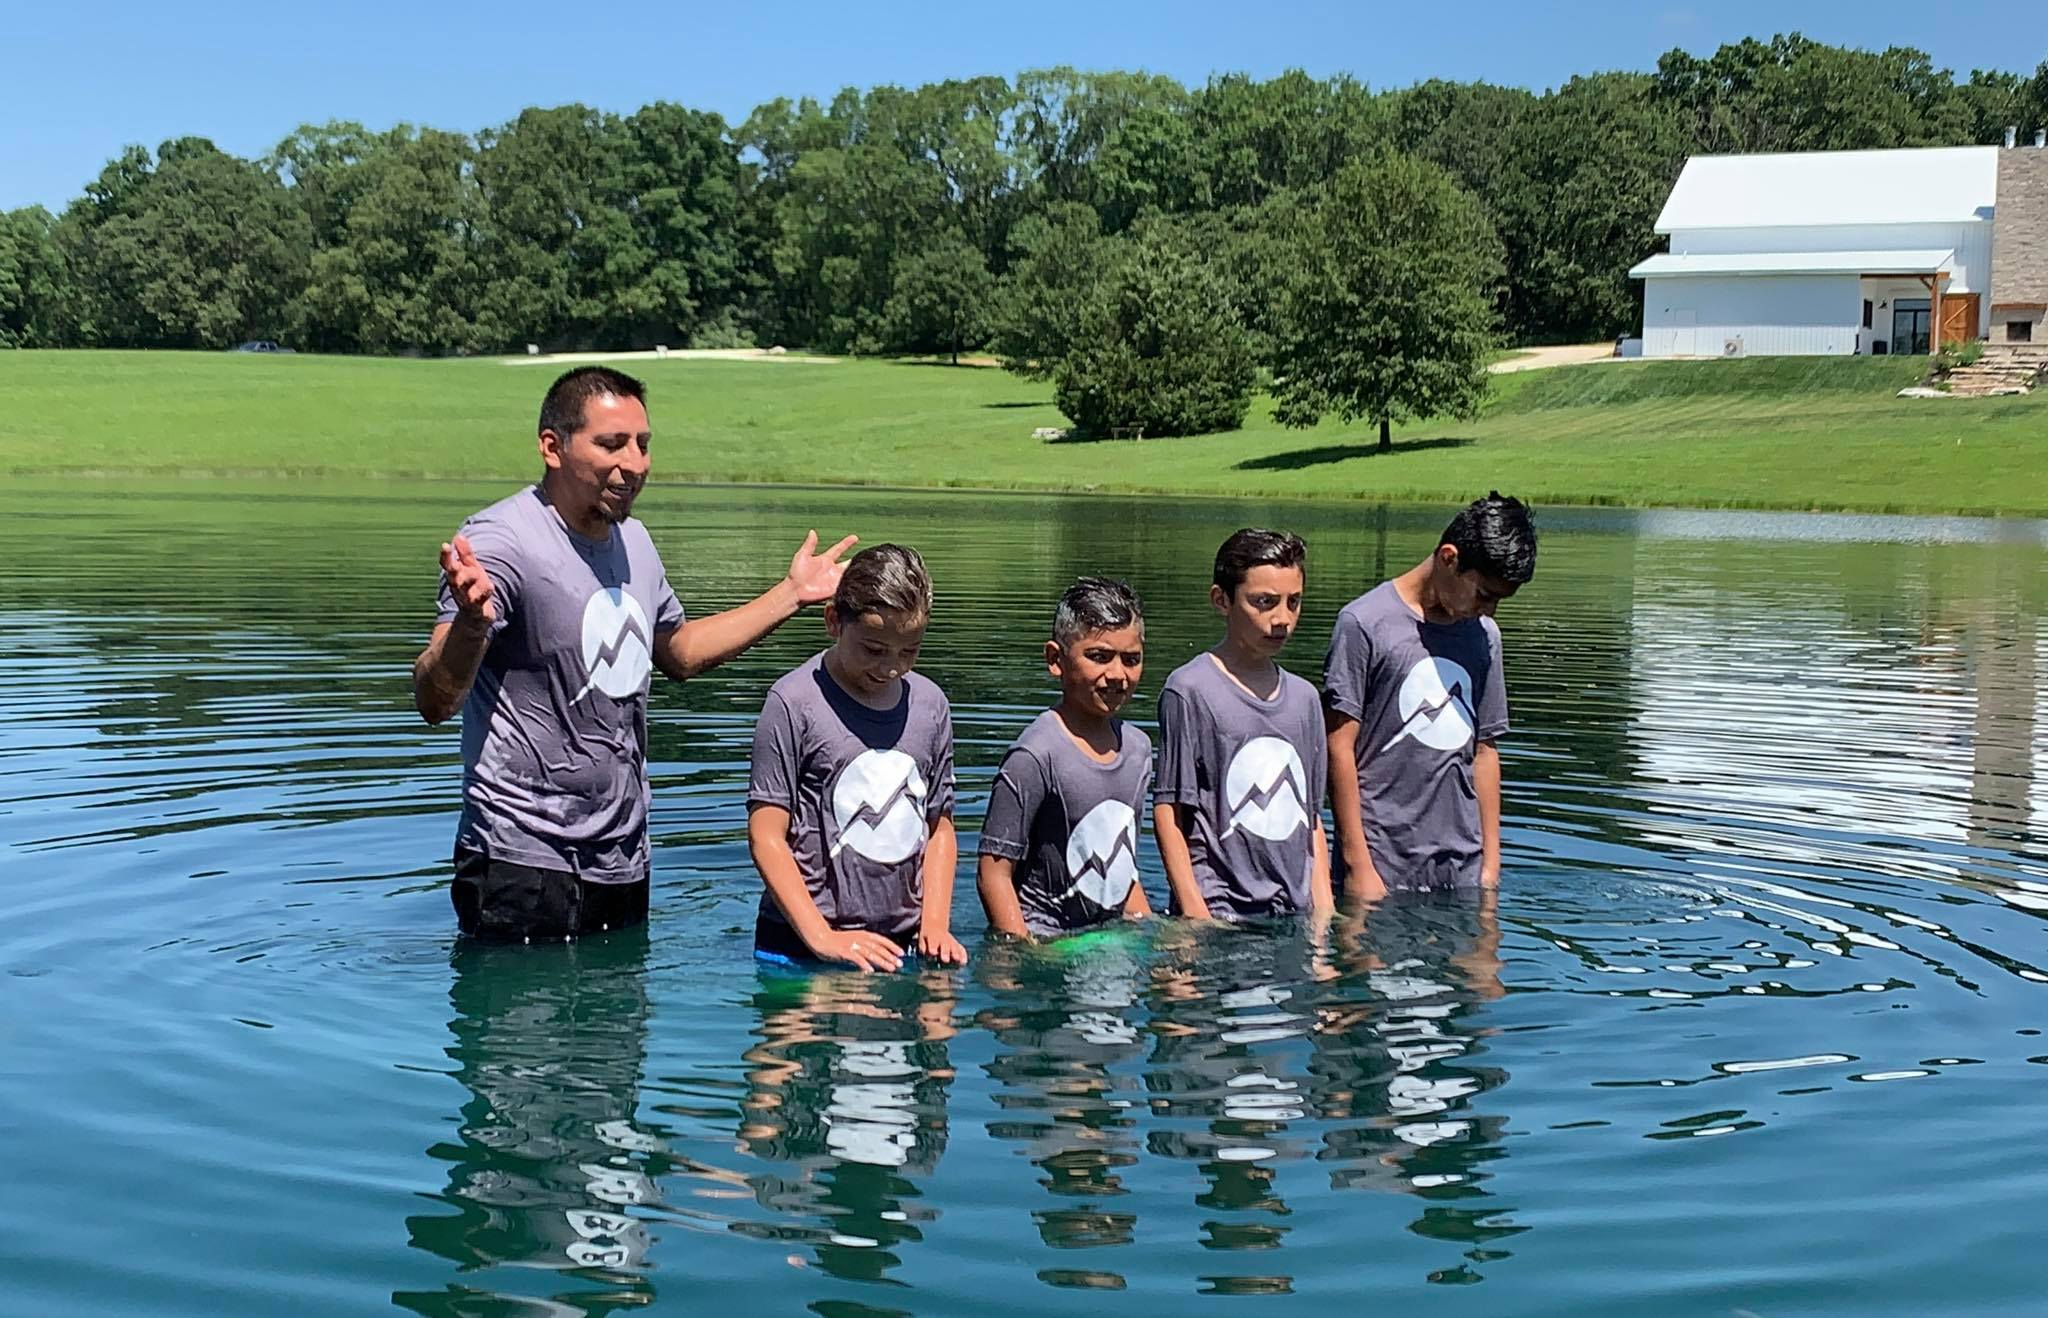 Lake Baptisms - After your picnic, you can make your way down to the lake to celebrate your baptisms in the lake. Over the years there have been 100s of believers who have publicly professed their faith in Jesus at the Ranch!